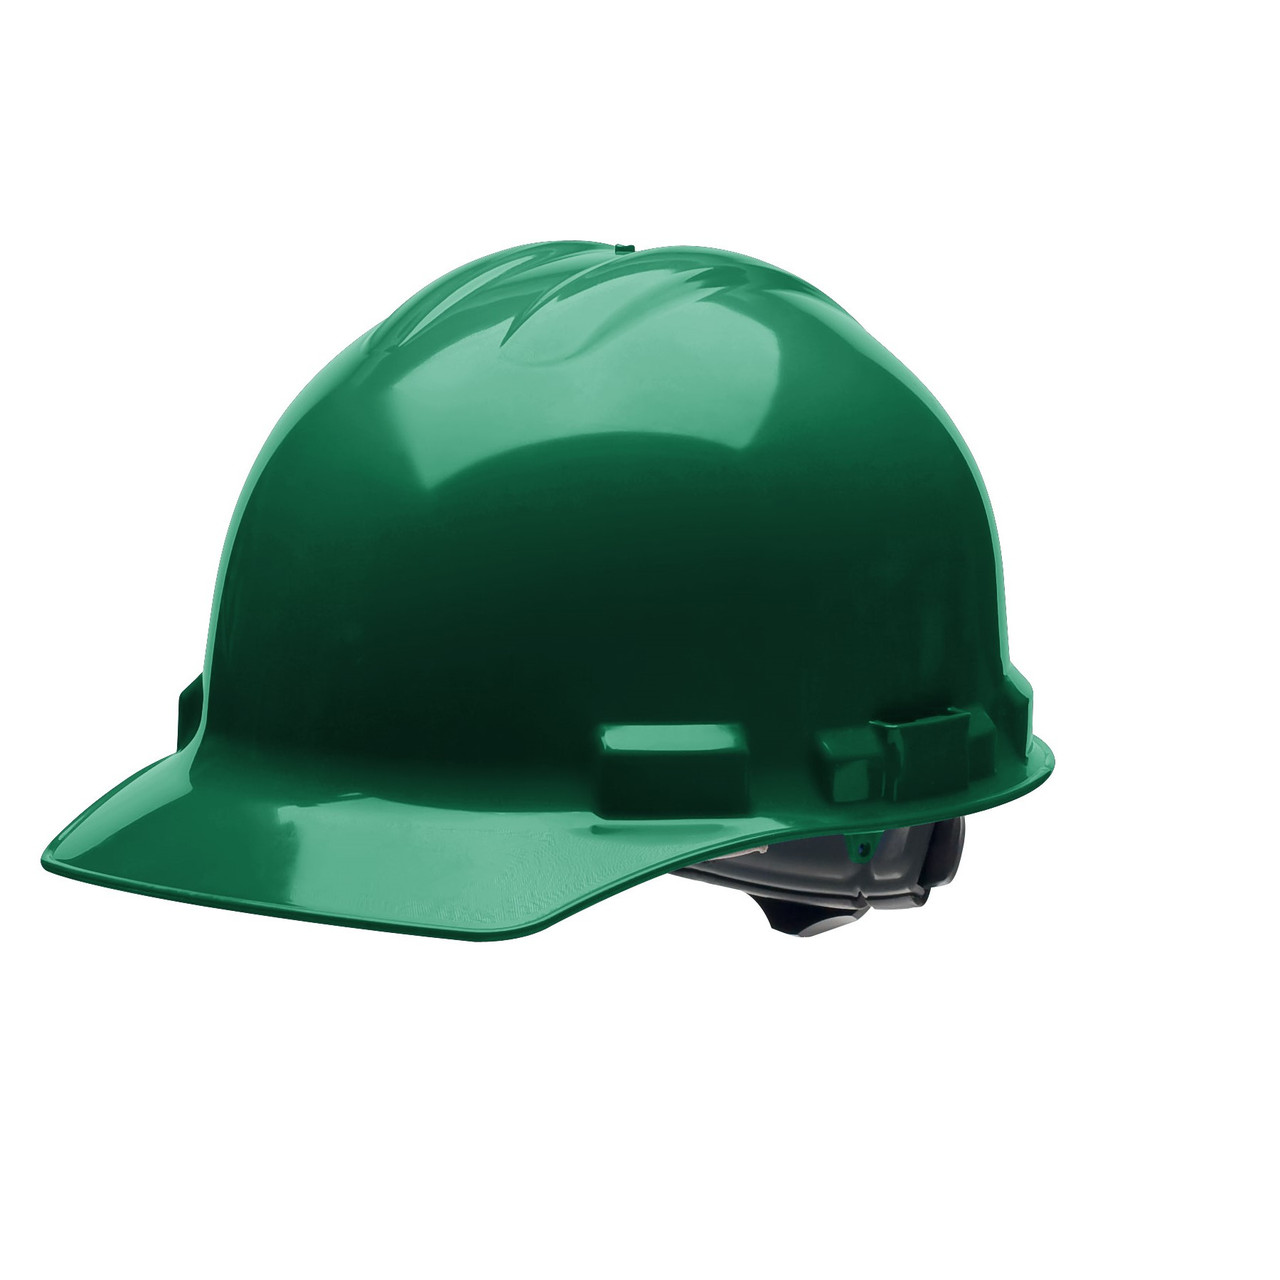 Forest Green Hard Hat Helmet Style Made in the USA